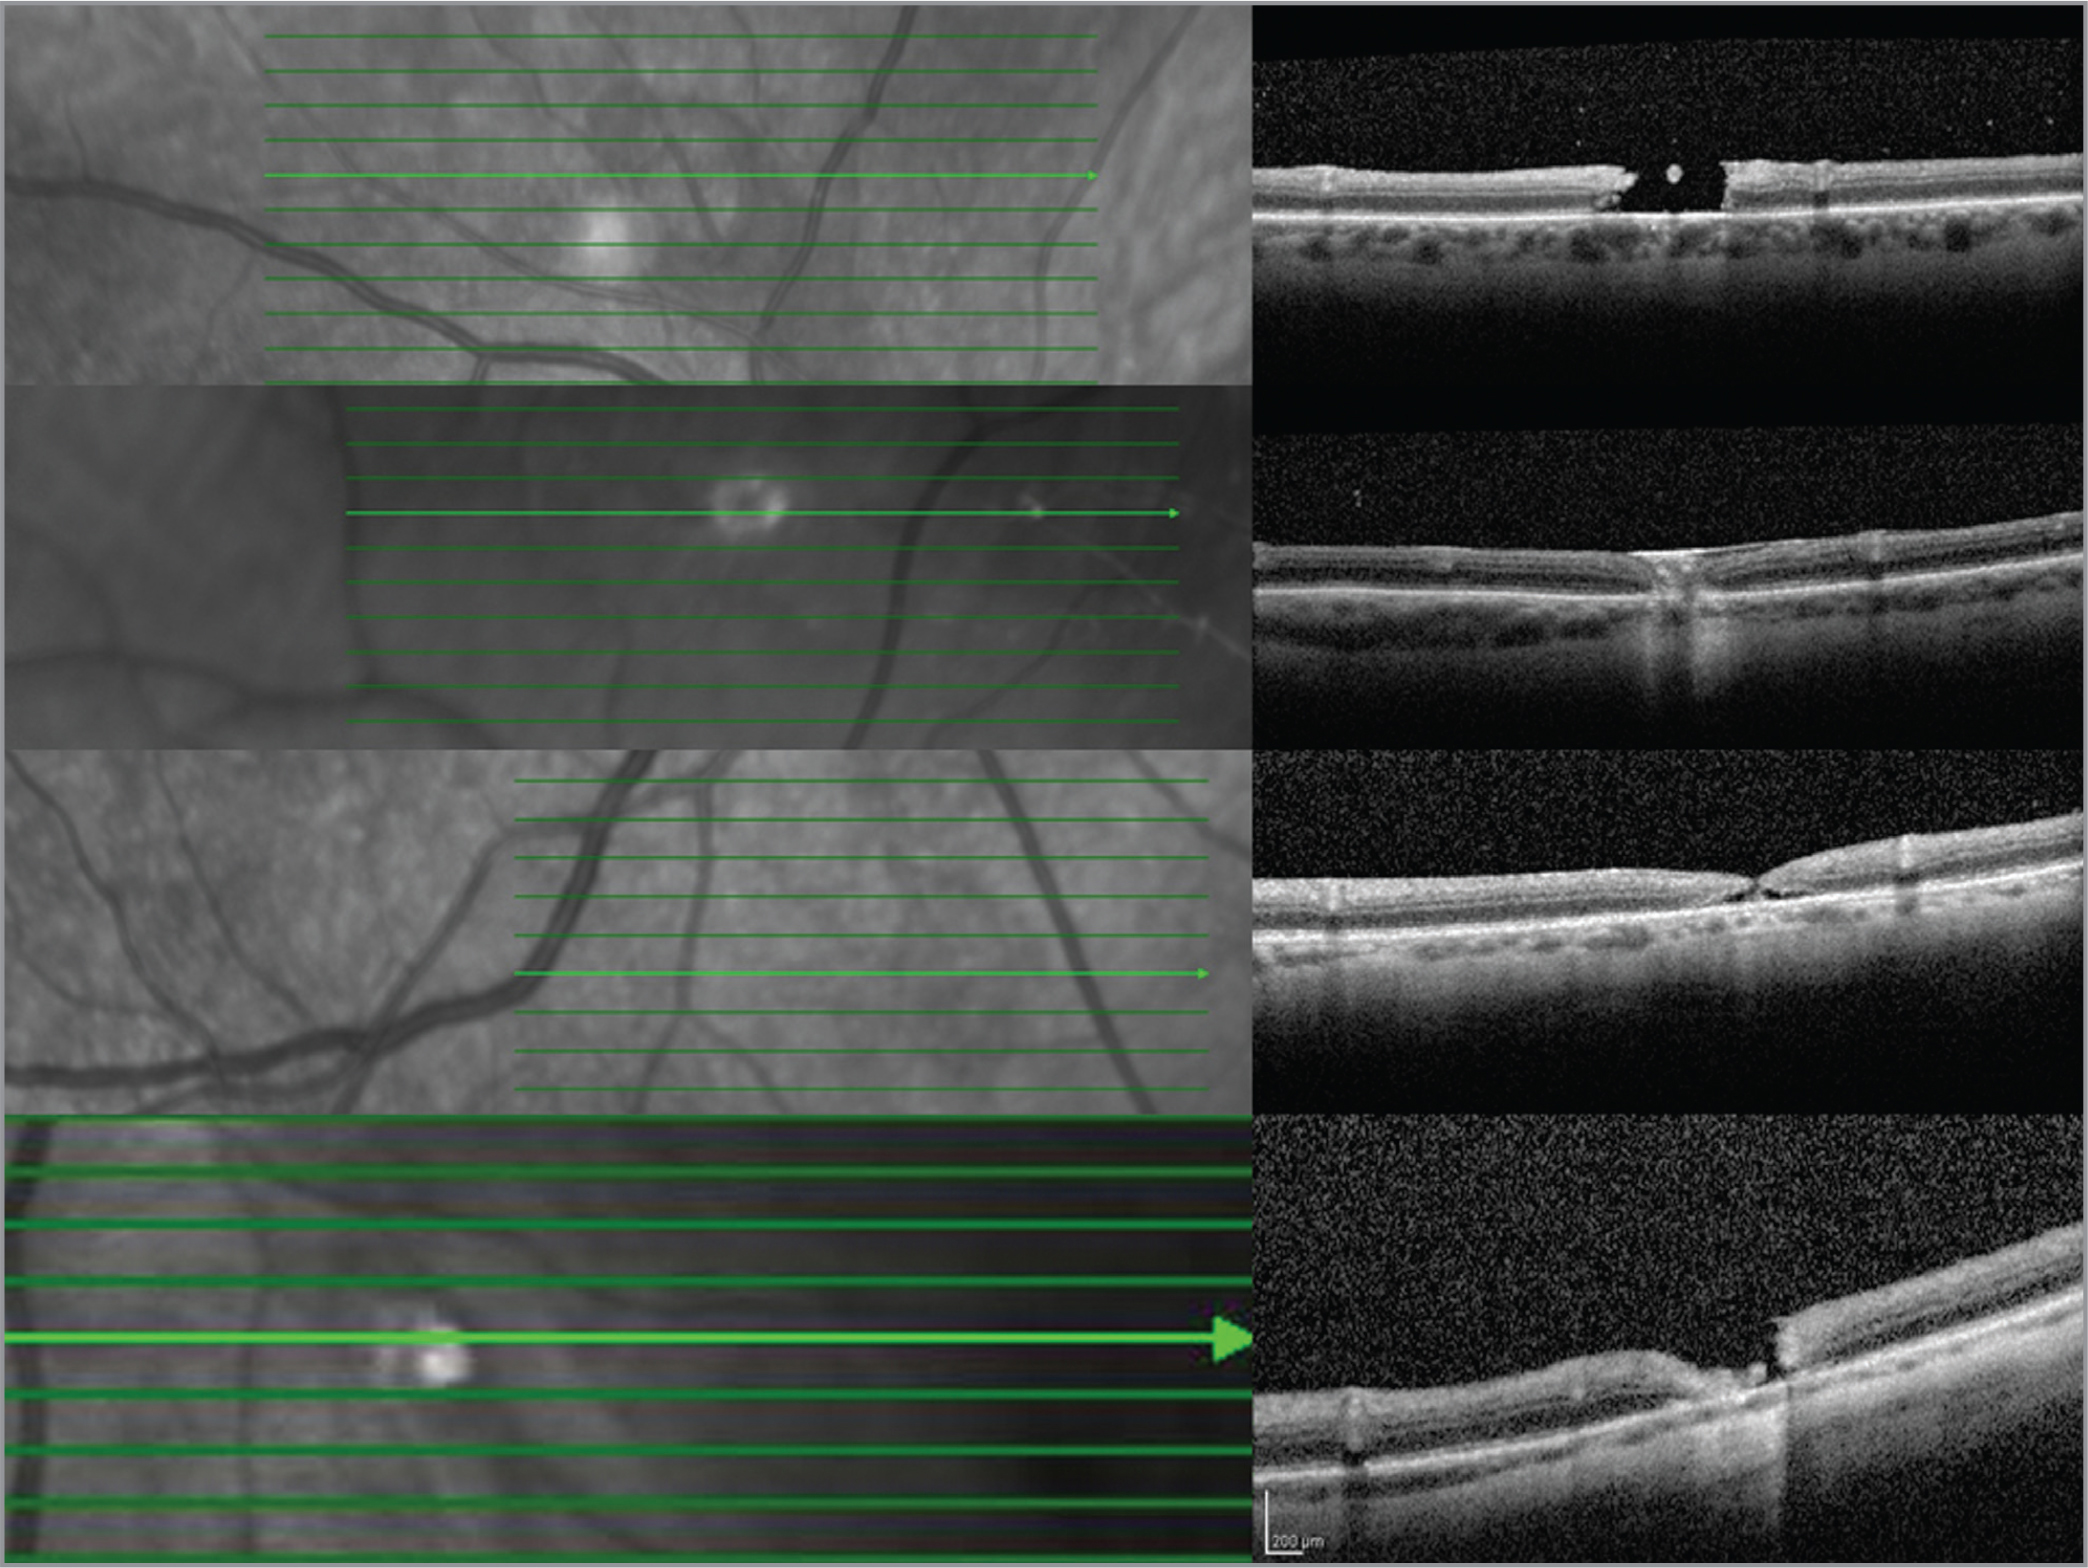 Optical coherence tomography image of non-lasered retinotomies.